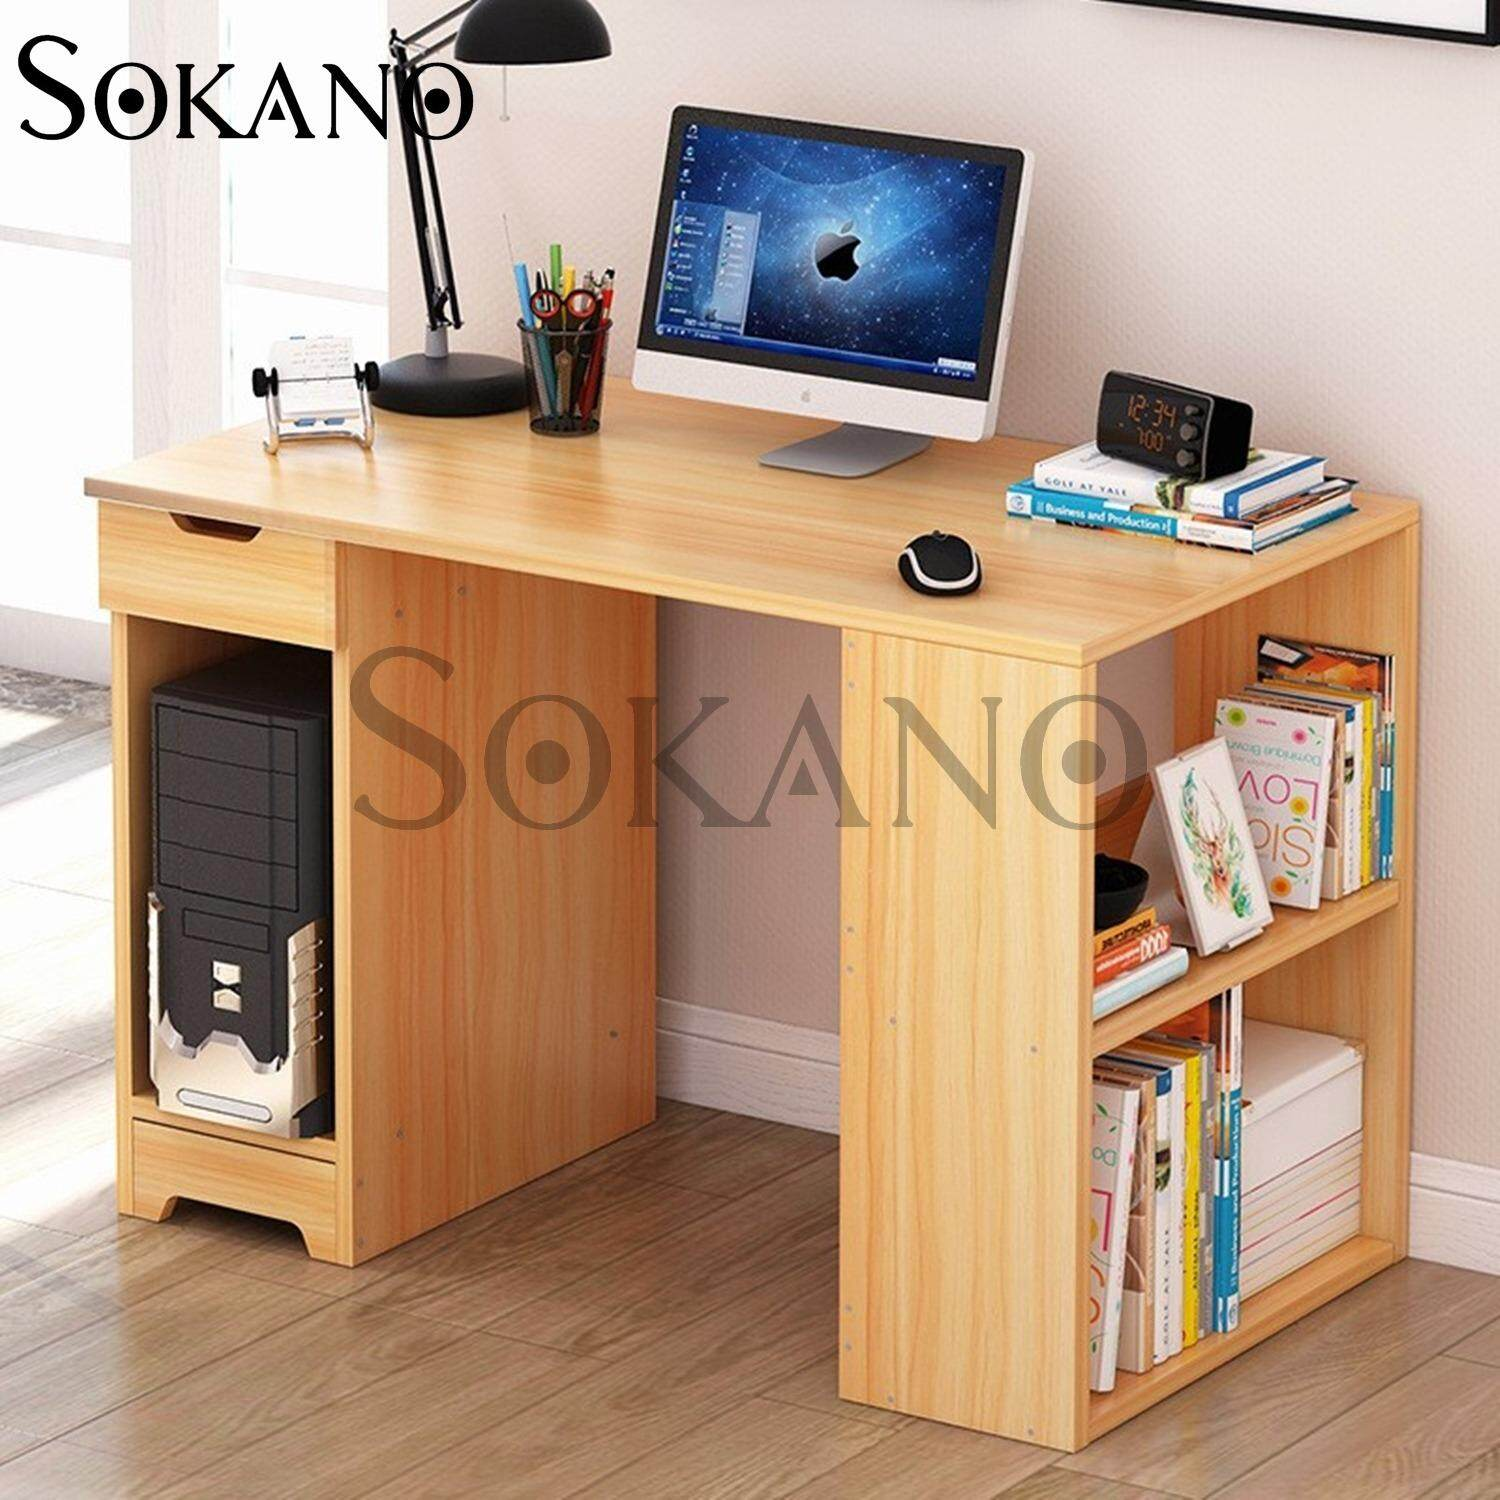 Sokano B2174 Premium Classic Writing Table And Dekstop Wooden Desk Light Brown 21702a Malaysia